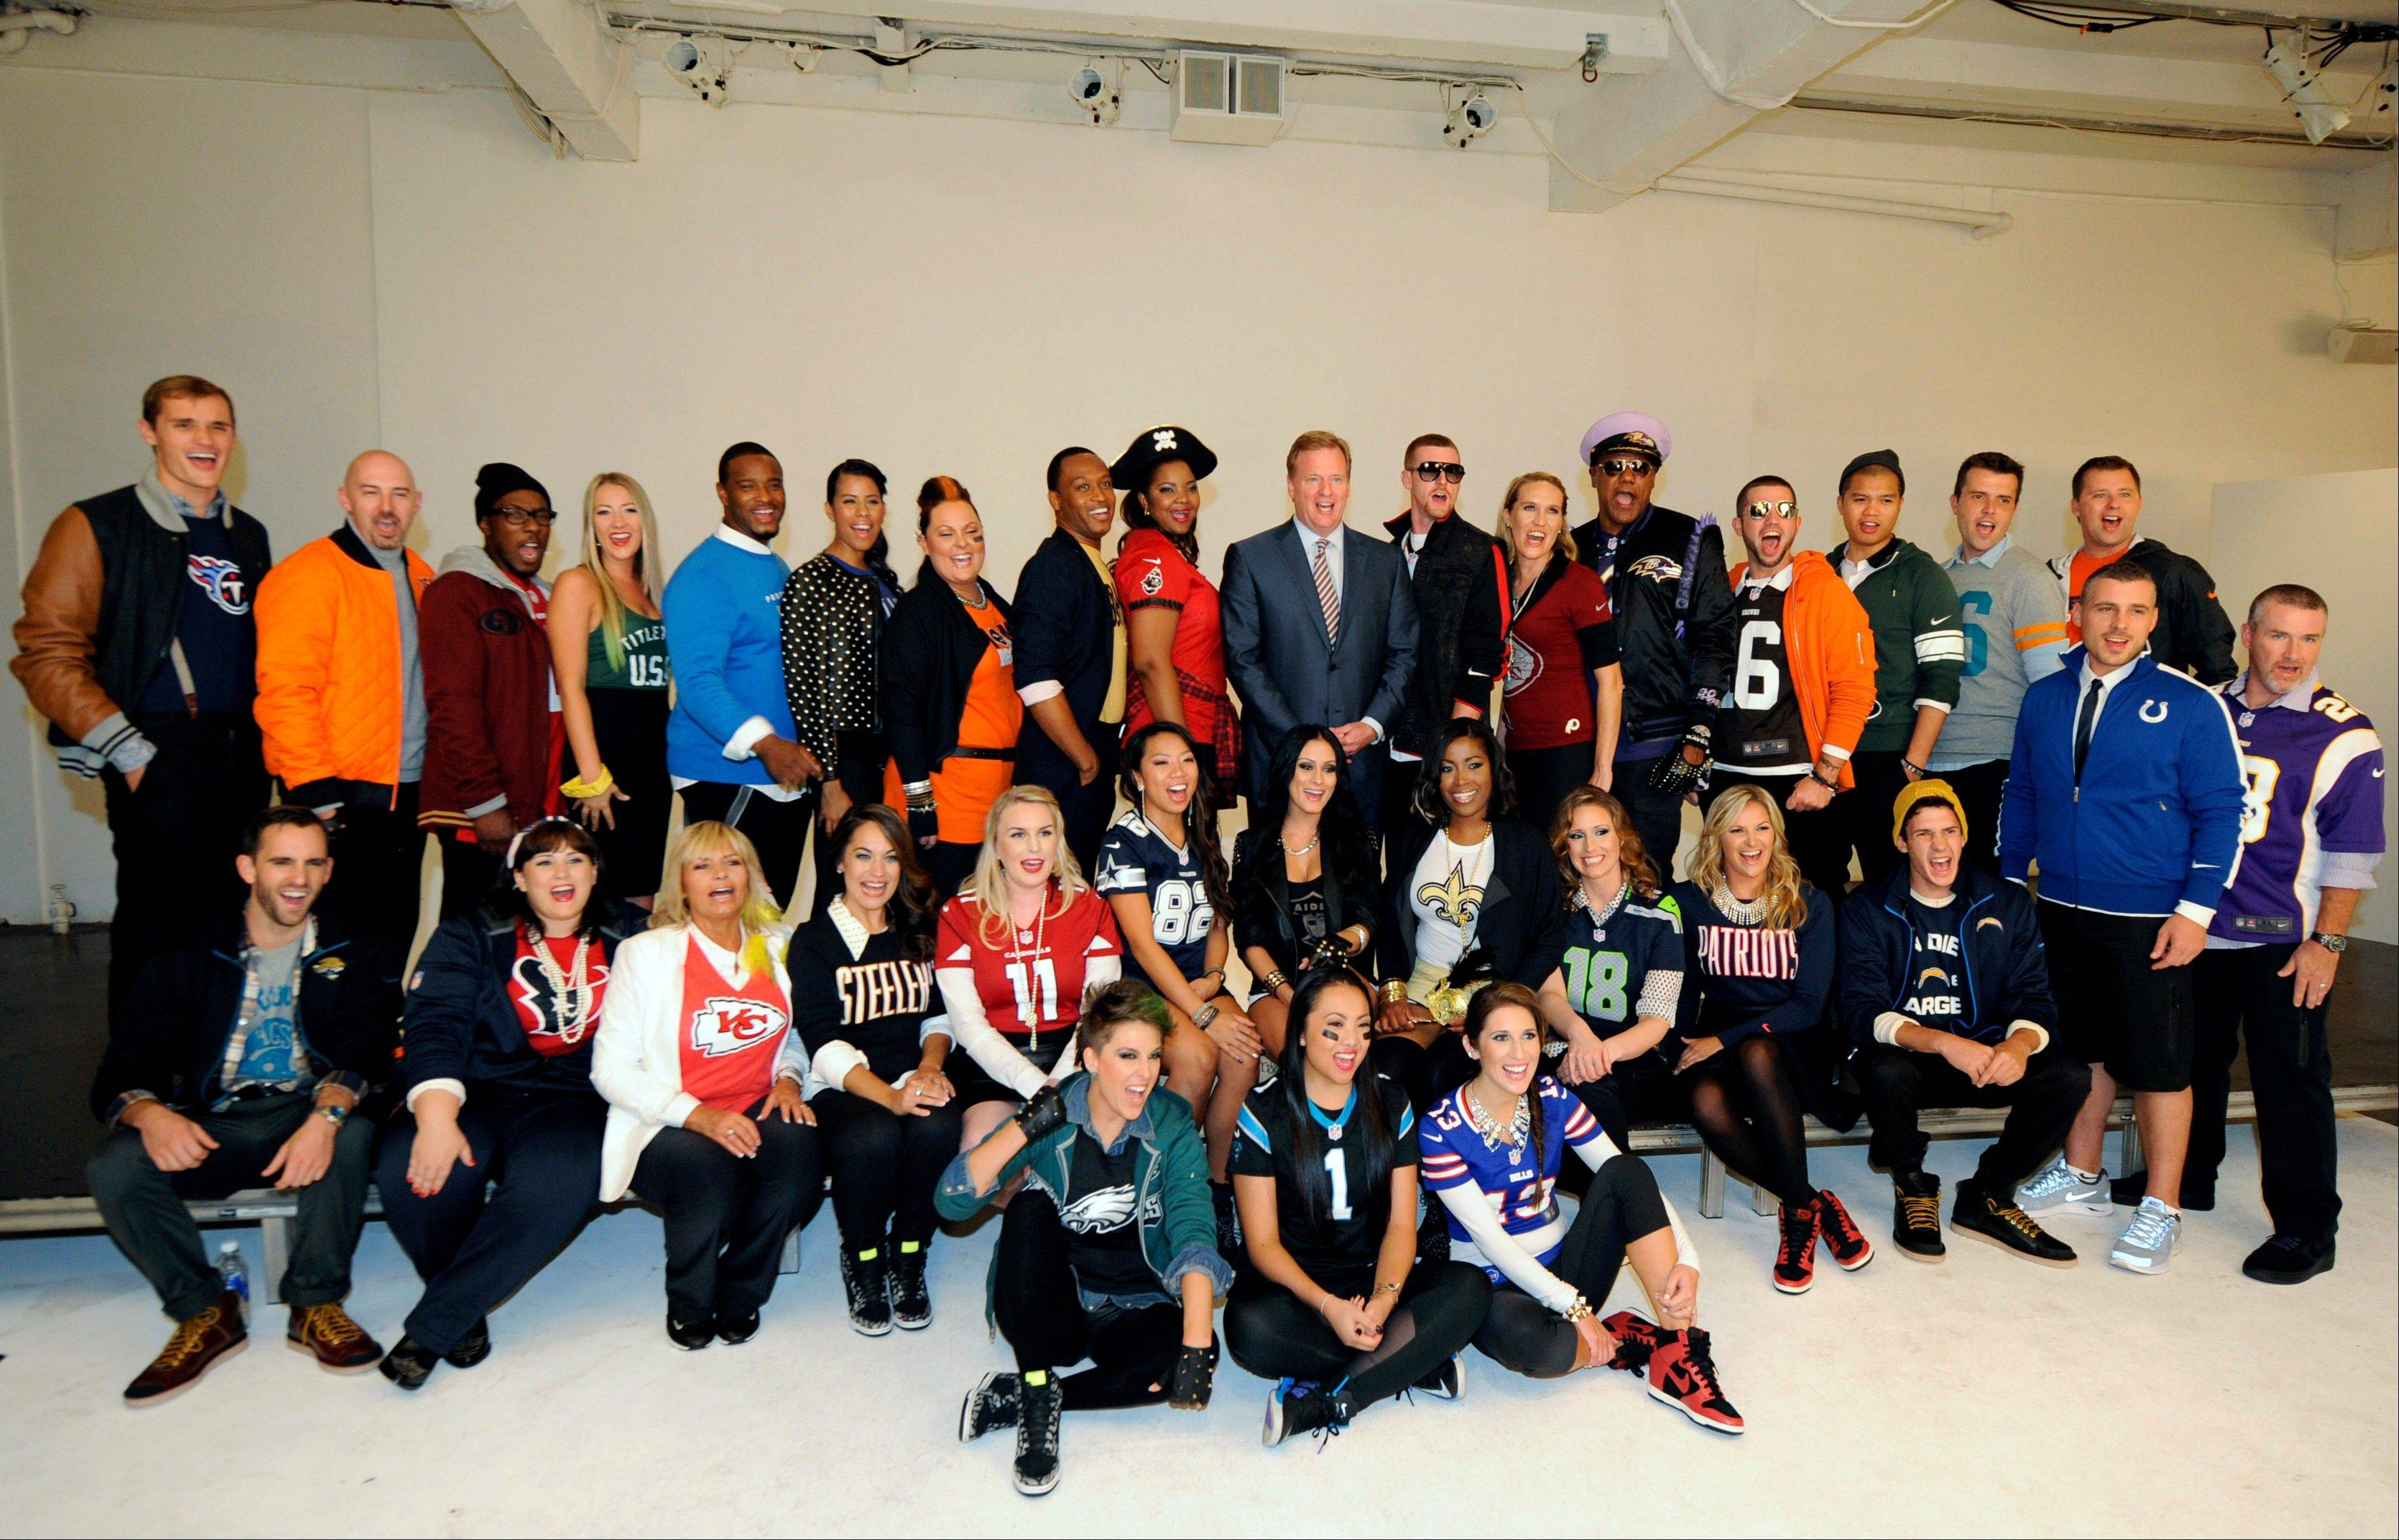 Commissioner Roger Goodell, center, is surrounded by one fan from each of the league�s 32 teams who were chosen to take part in the NFL�s Back to Football Photo Day in New York.